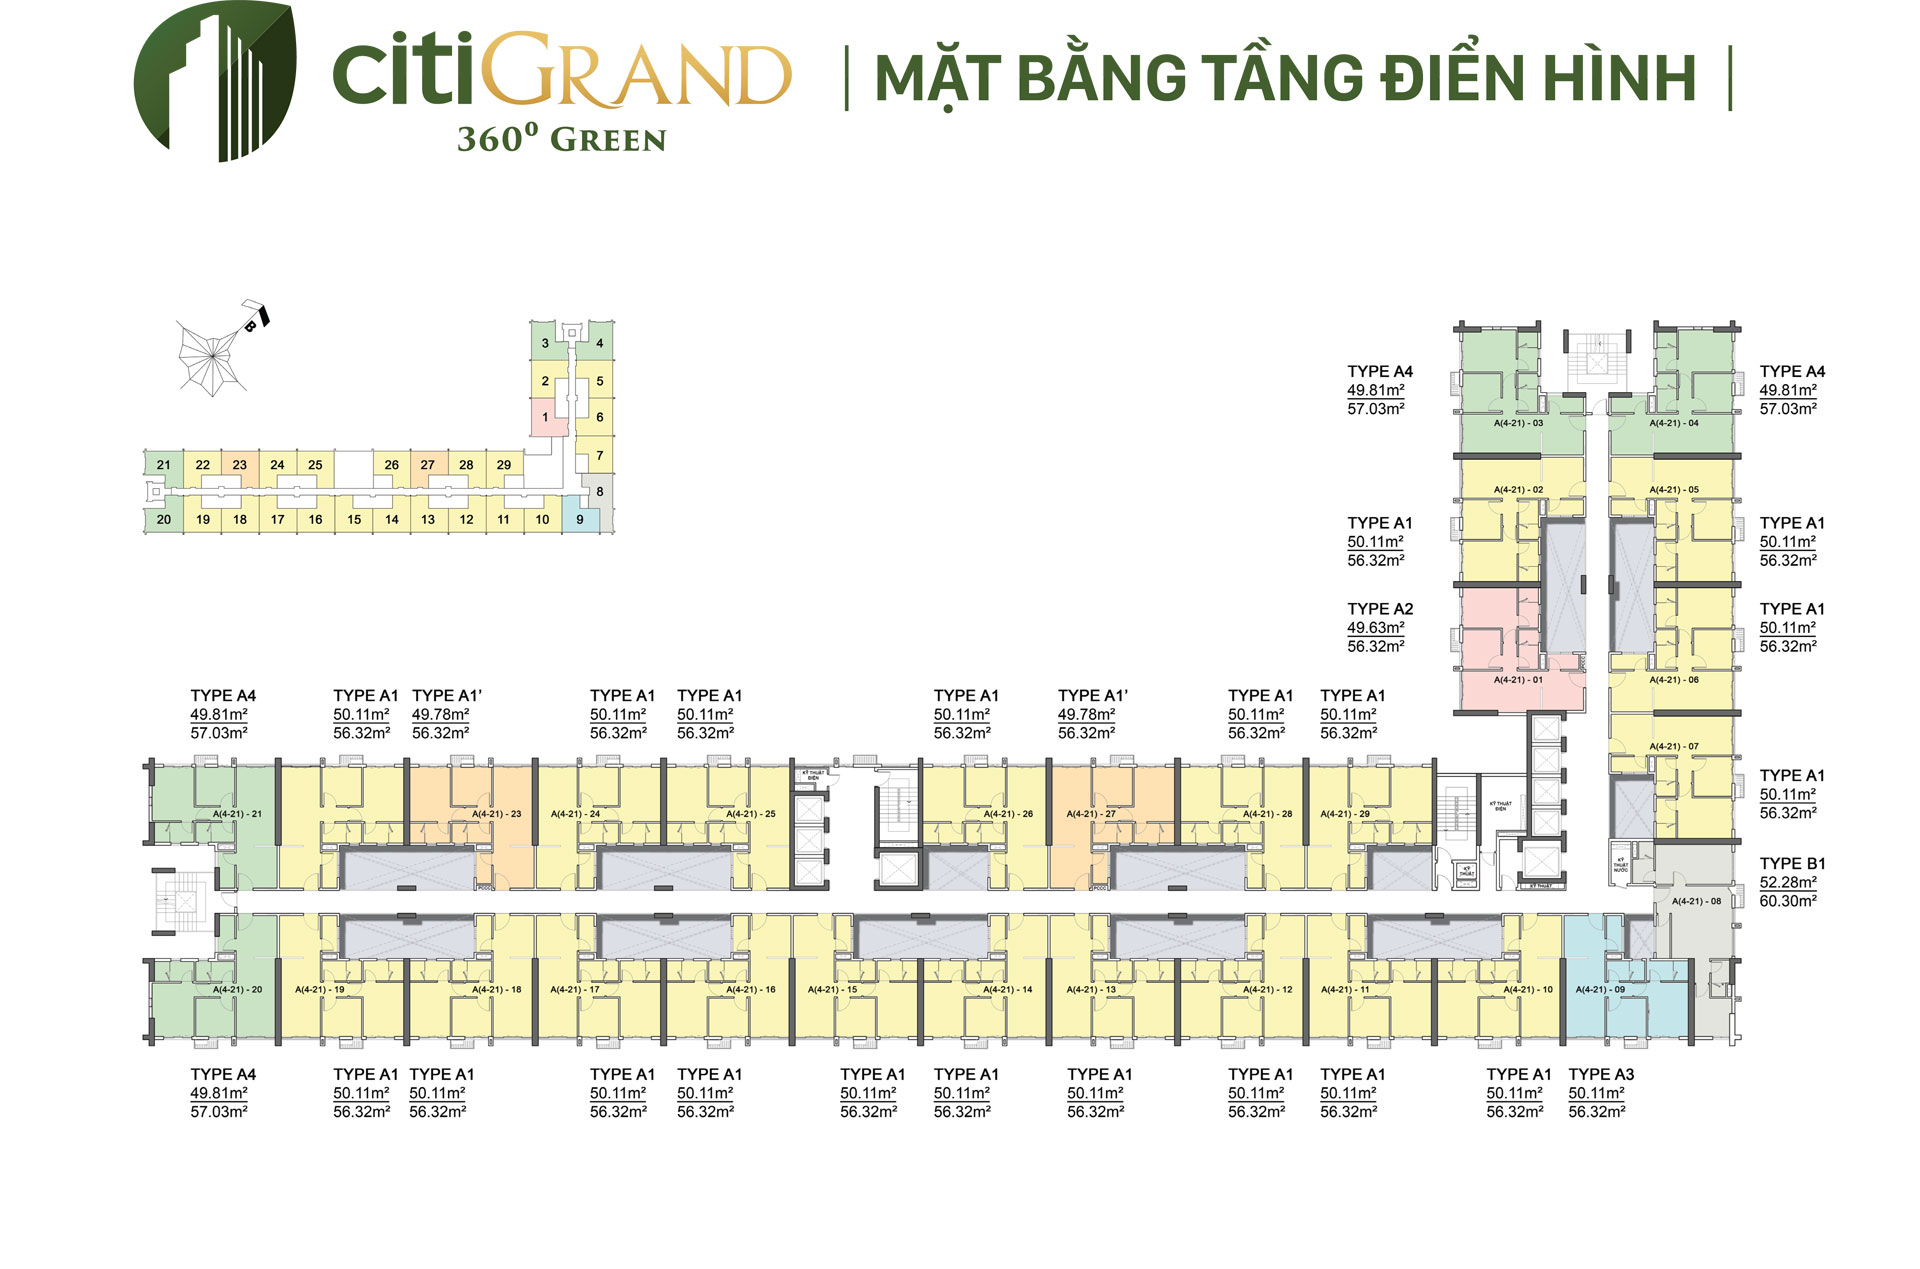 mat-bang-citi-grand.jpg